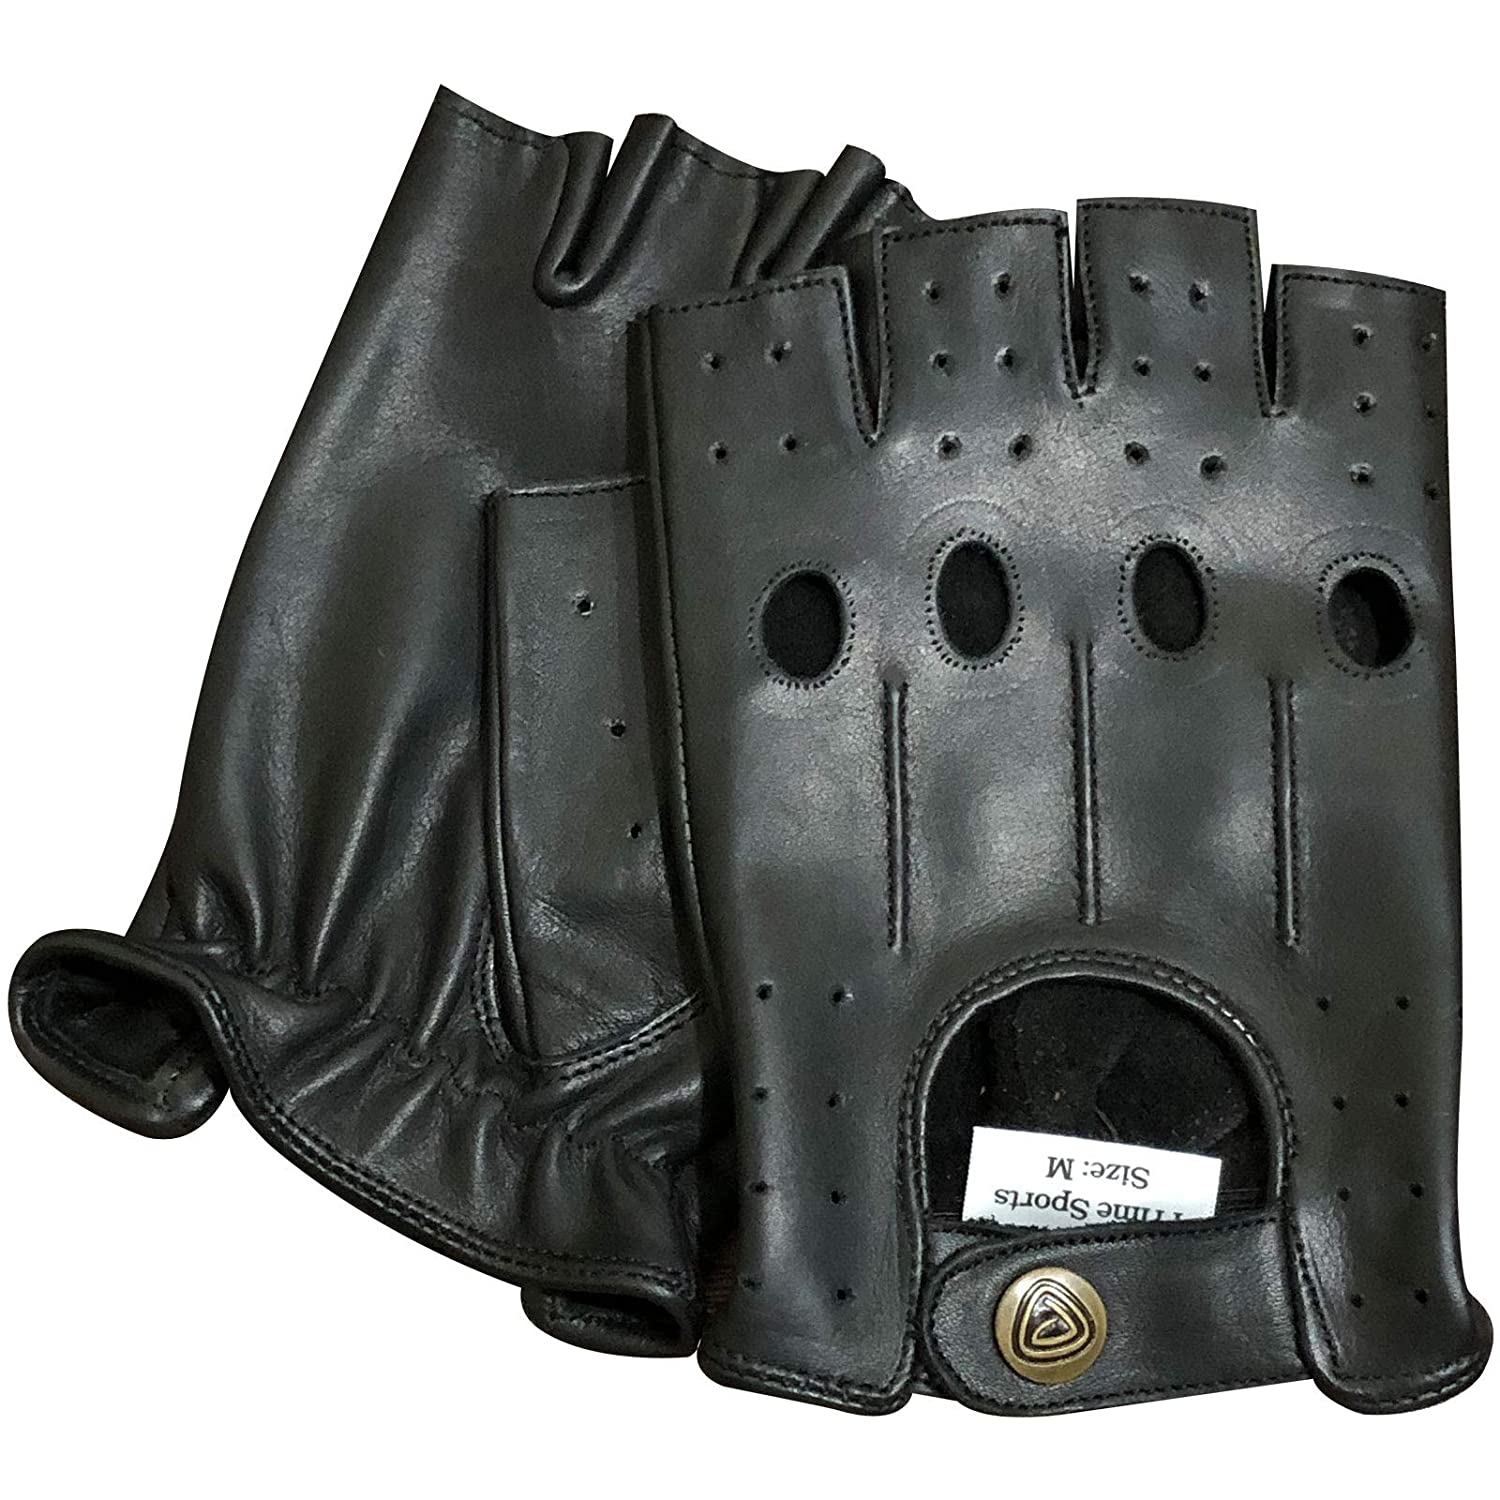 Brand new vintage retro style fingerless leather fashion driving cycle glove 317